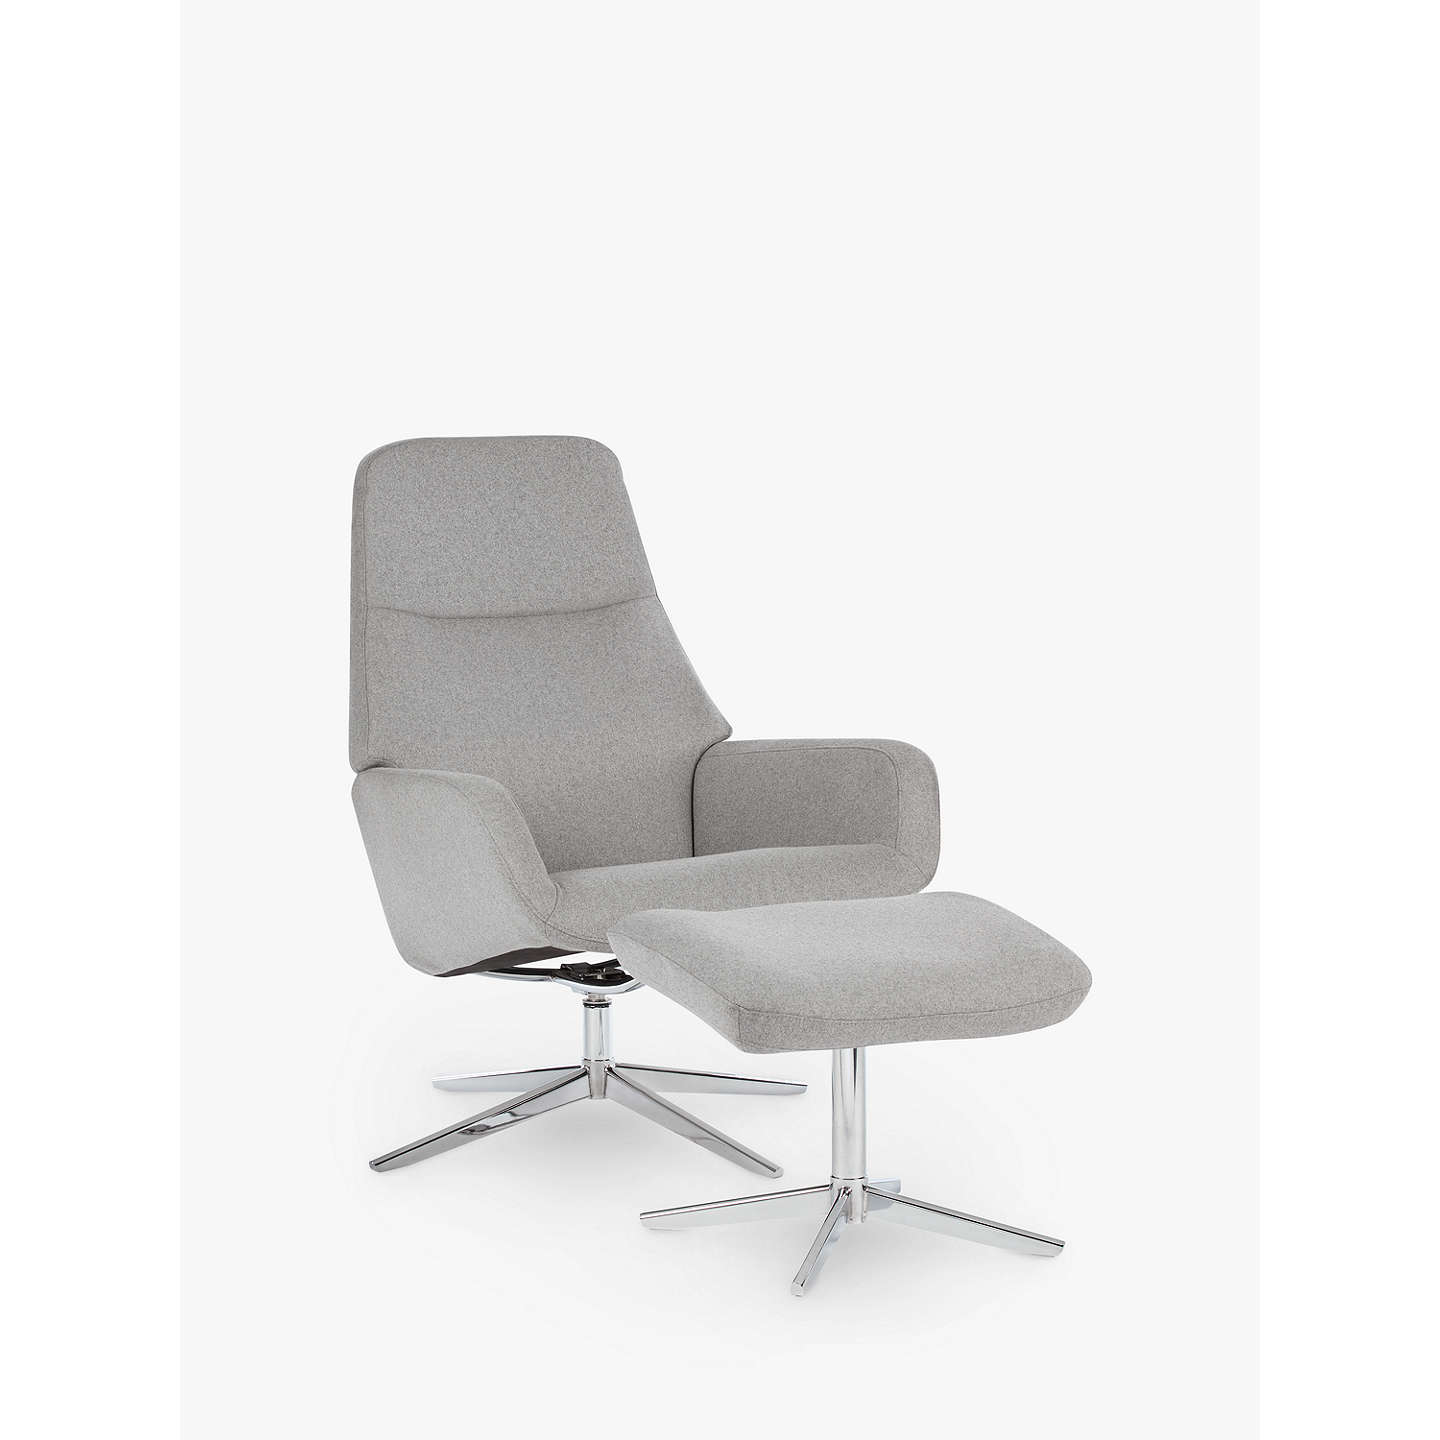 office chairs john lewis. BuyDesign Project By John Lewis No.122 Reclining Chair With Footstool, Grey Felt Online Office Chairs I